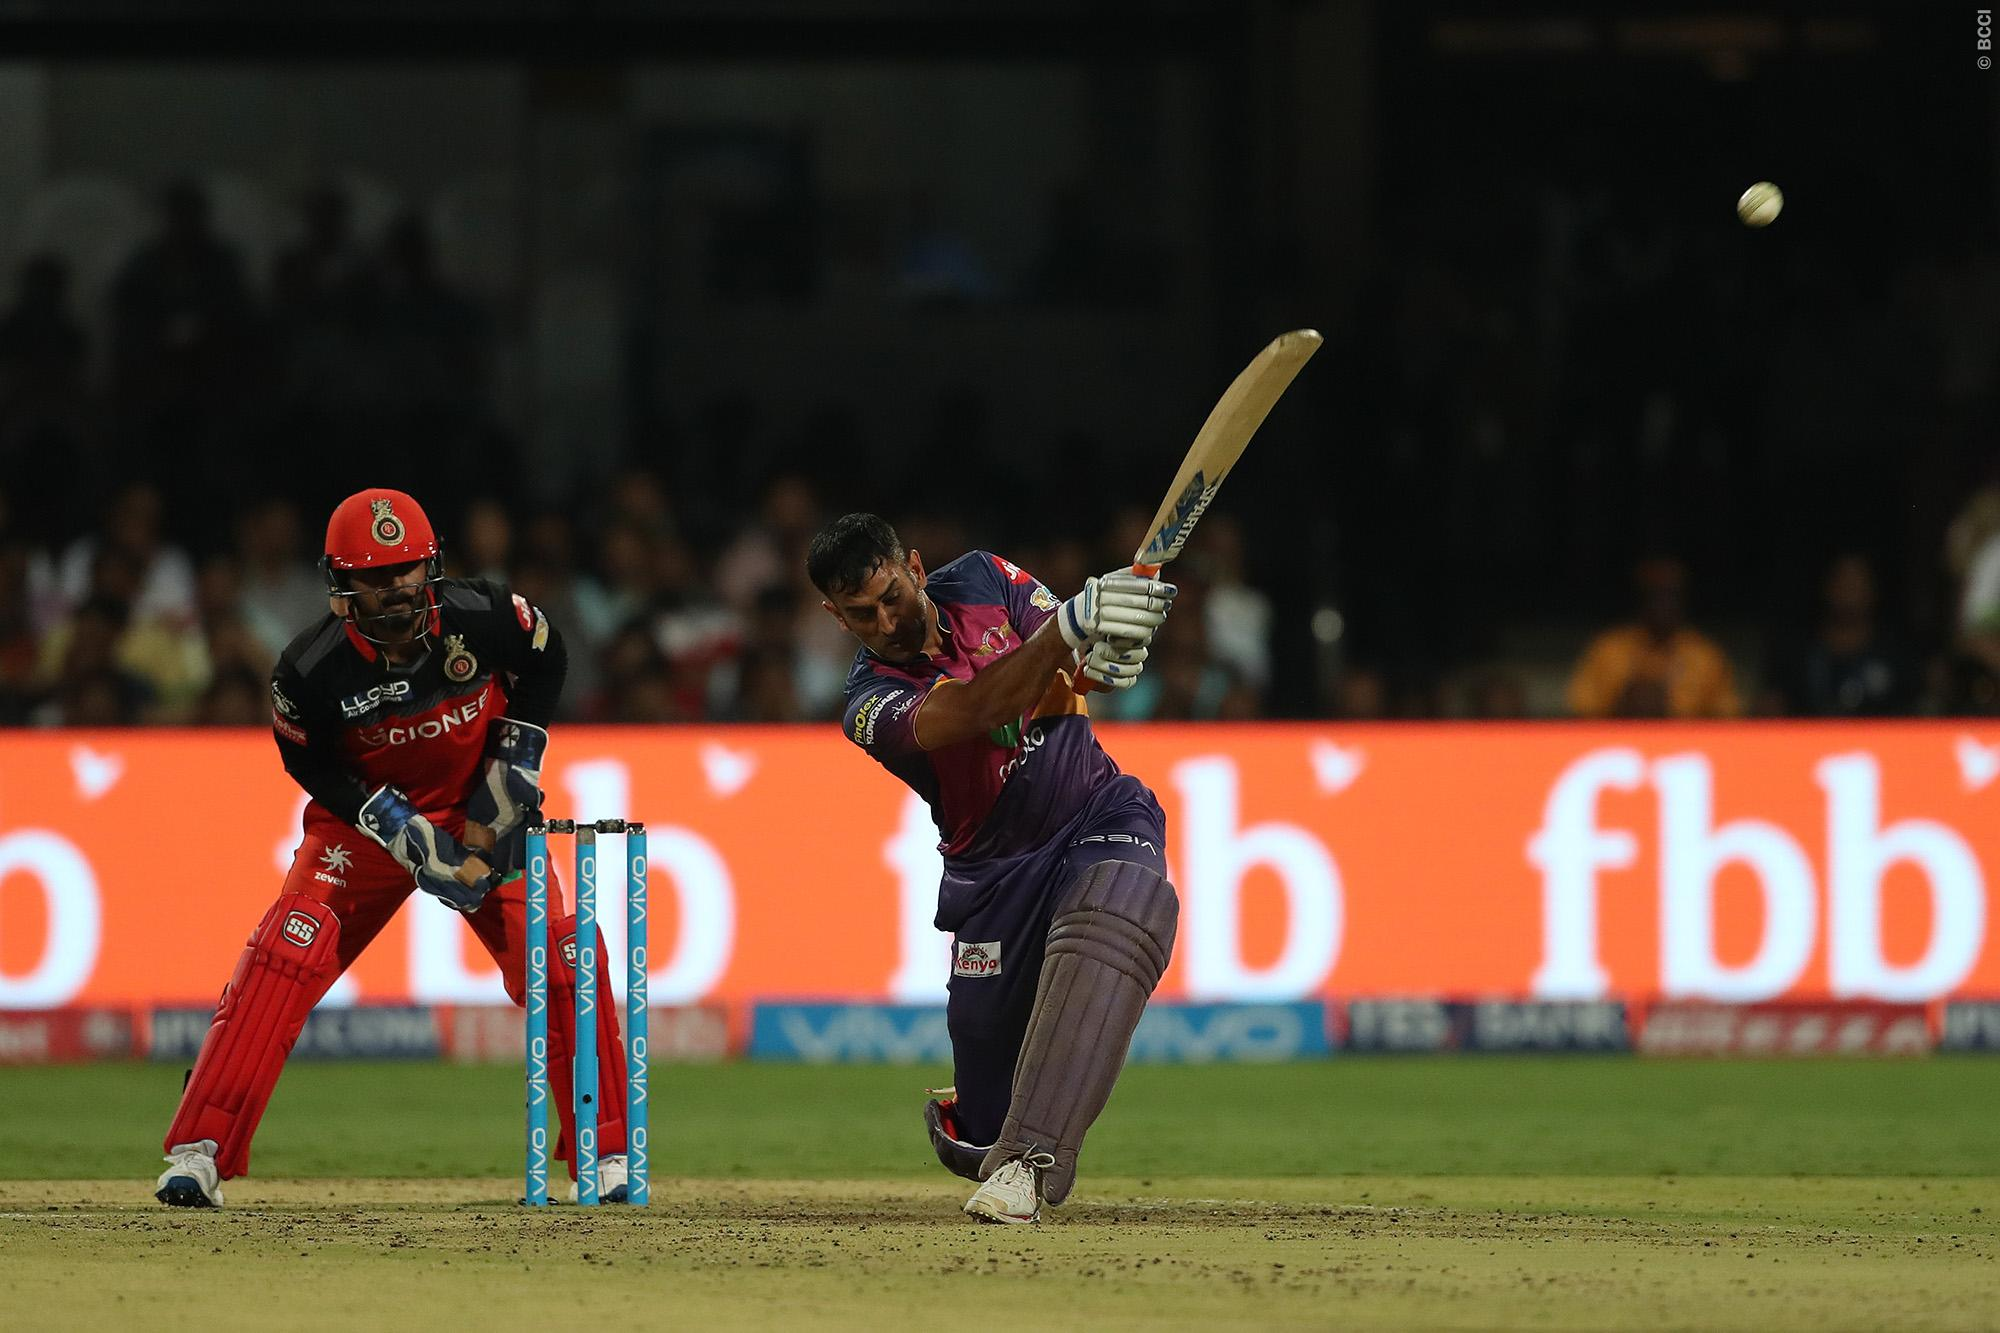 Watch Royal Challengers Bangalore vs Rising Pune Supergiants Highlights